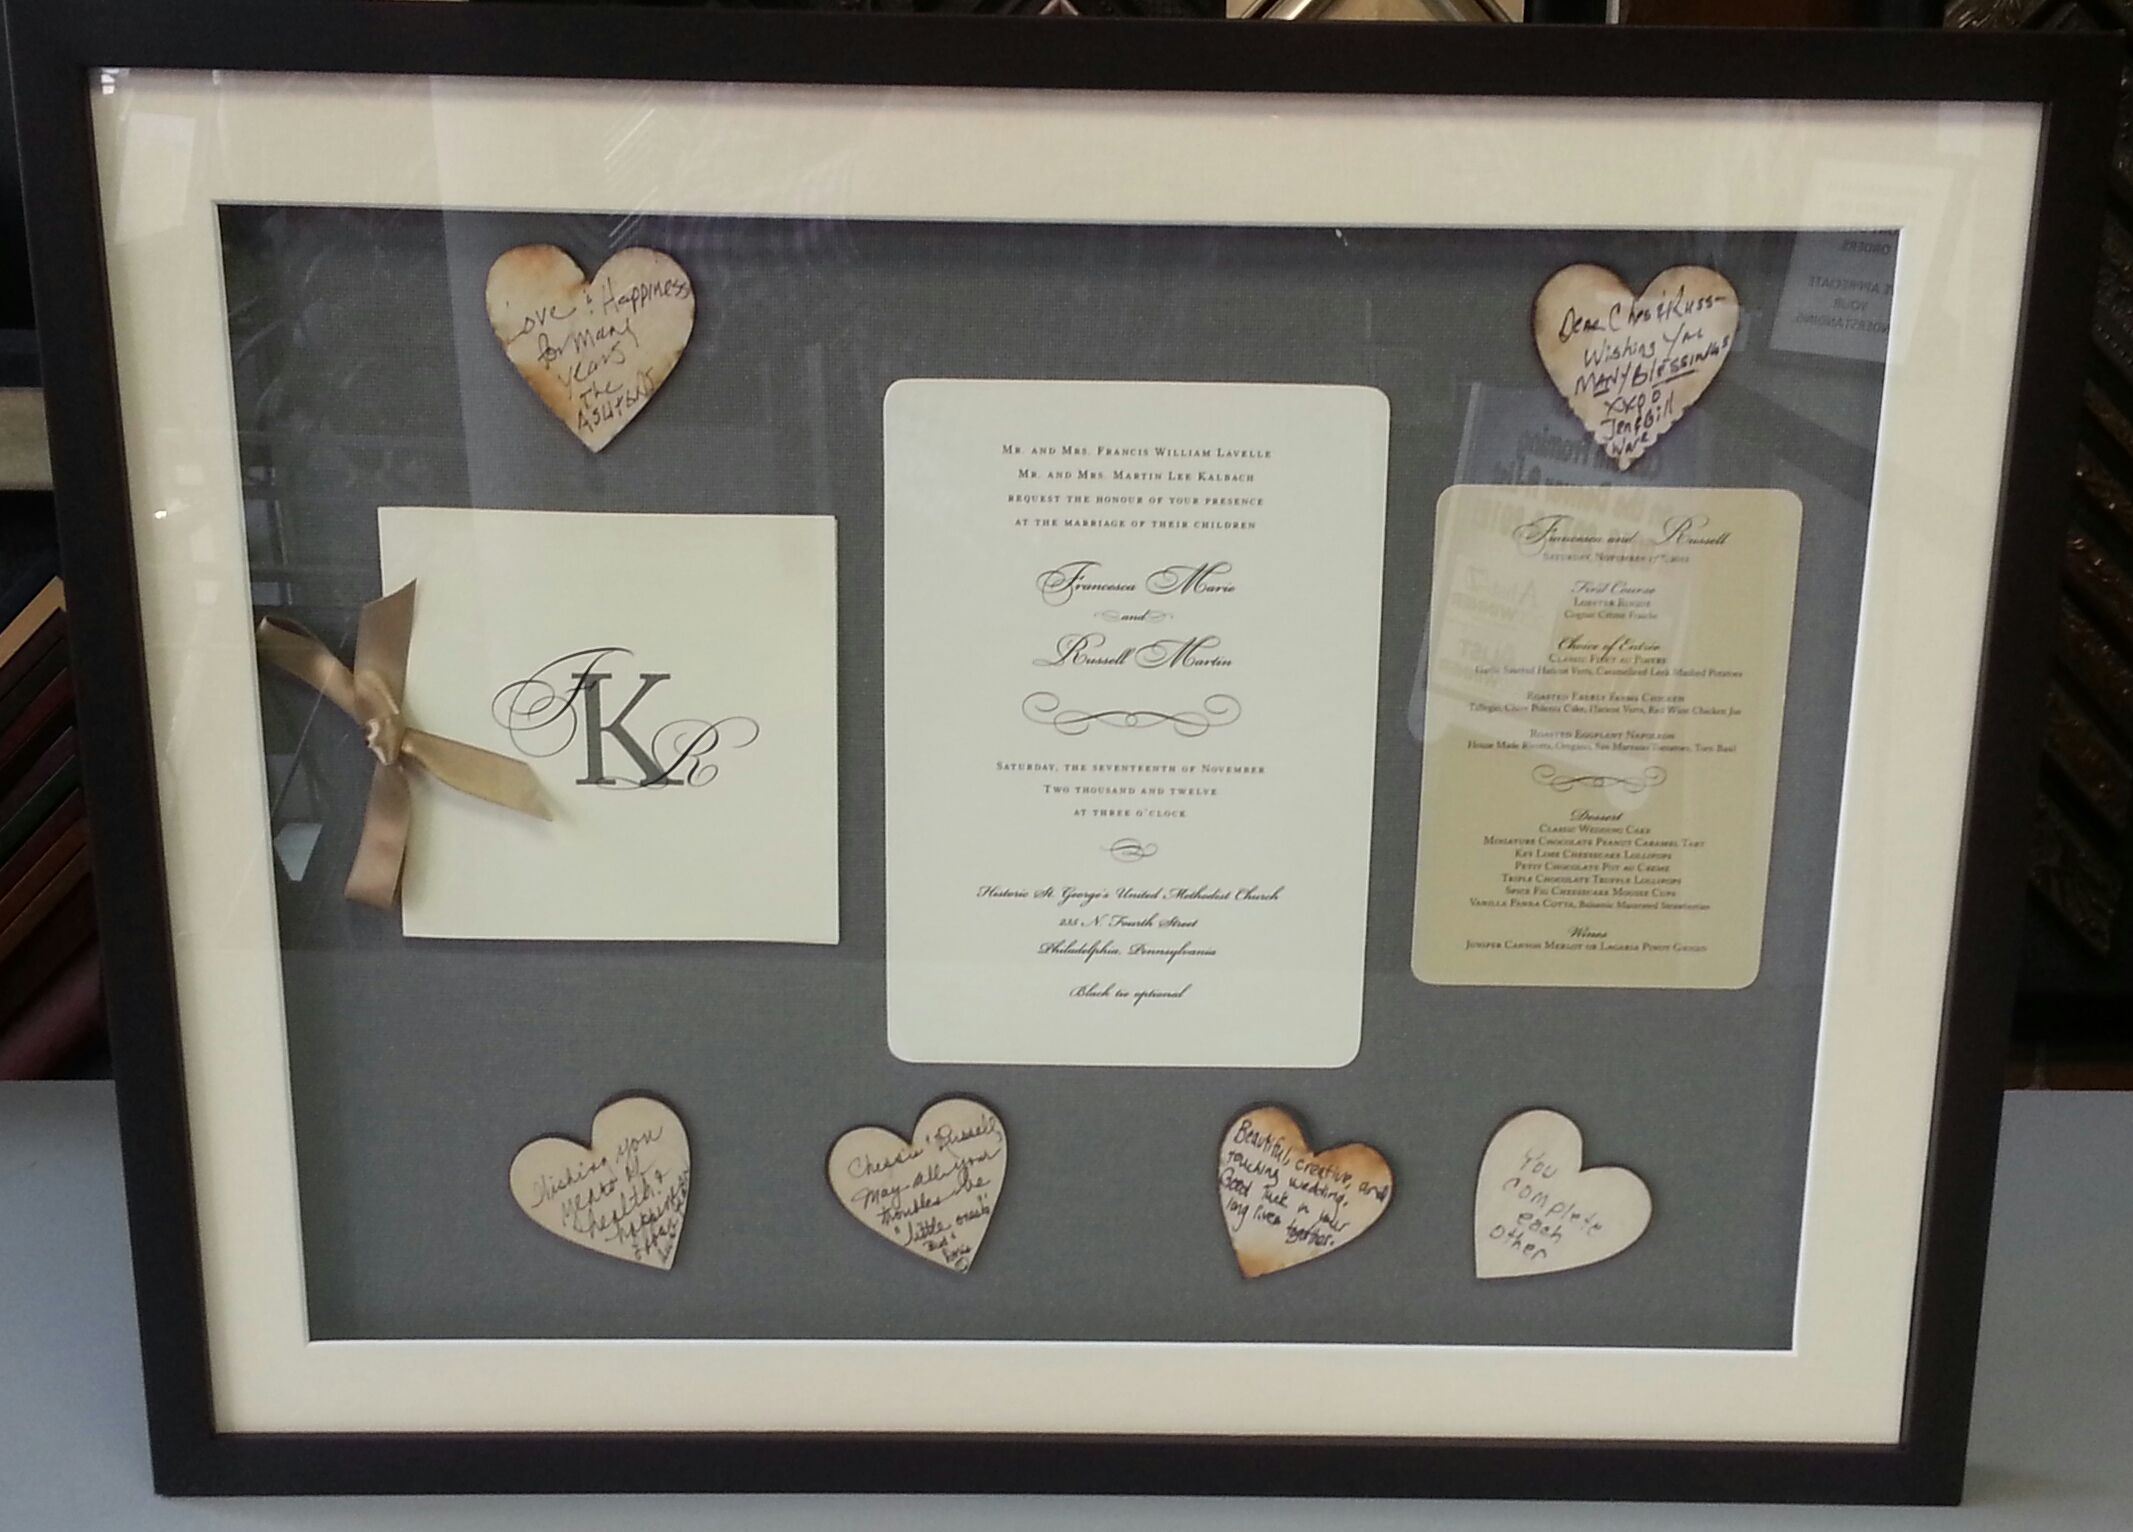 box wedding invitations online%0A Custom framed shadowbox wedding invitation including wooden hearts signed  by guests  Custom framed by FastFrame